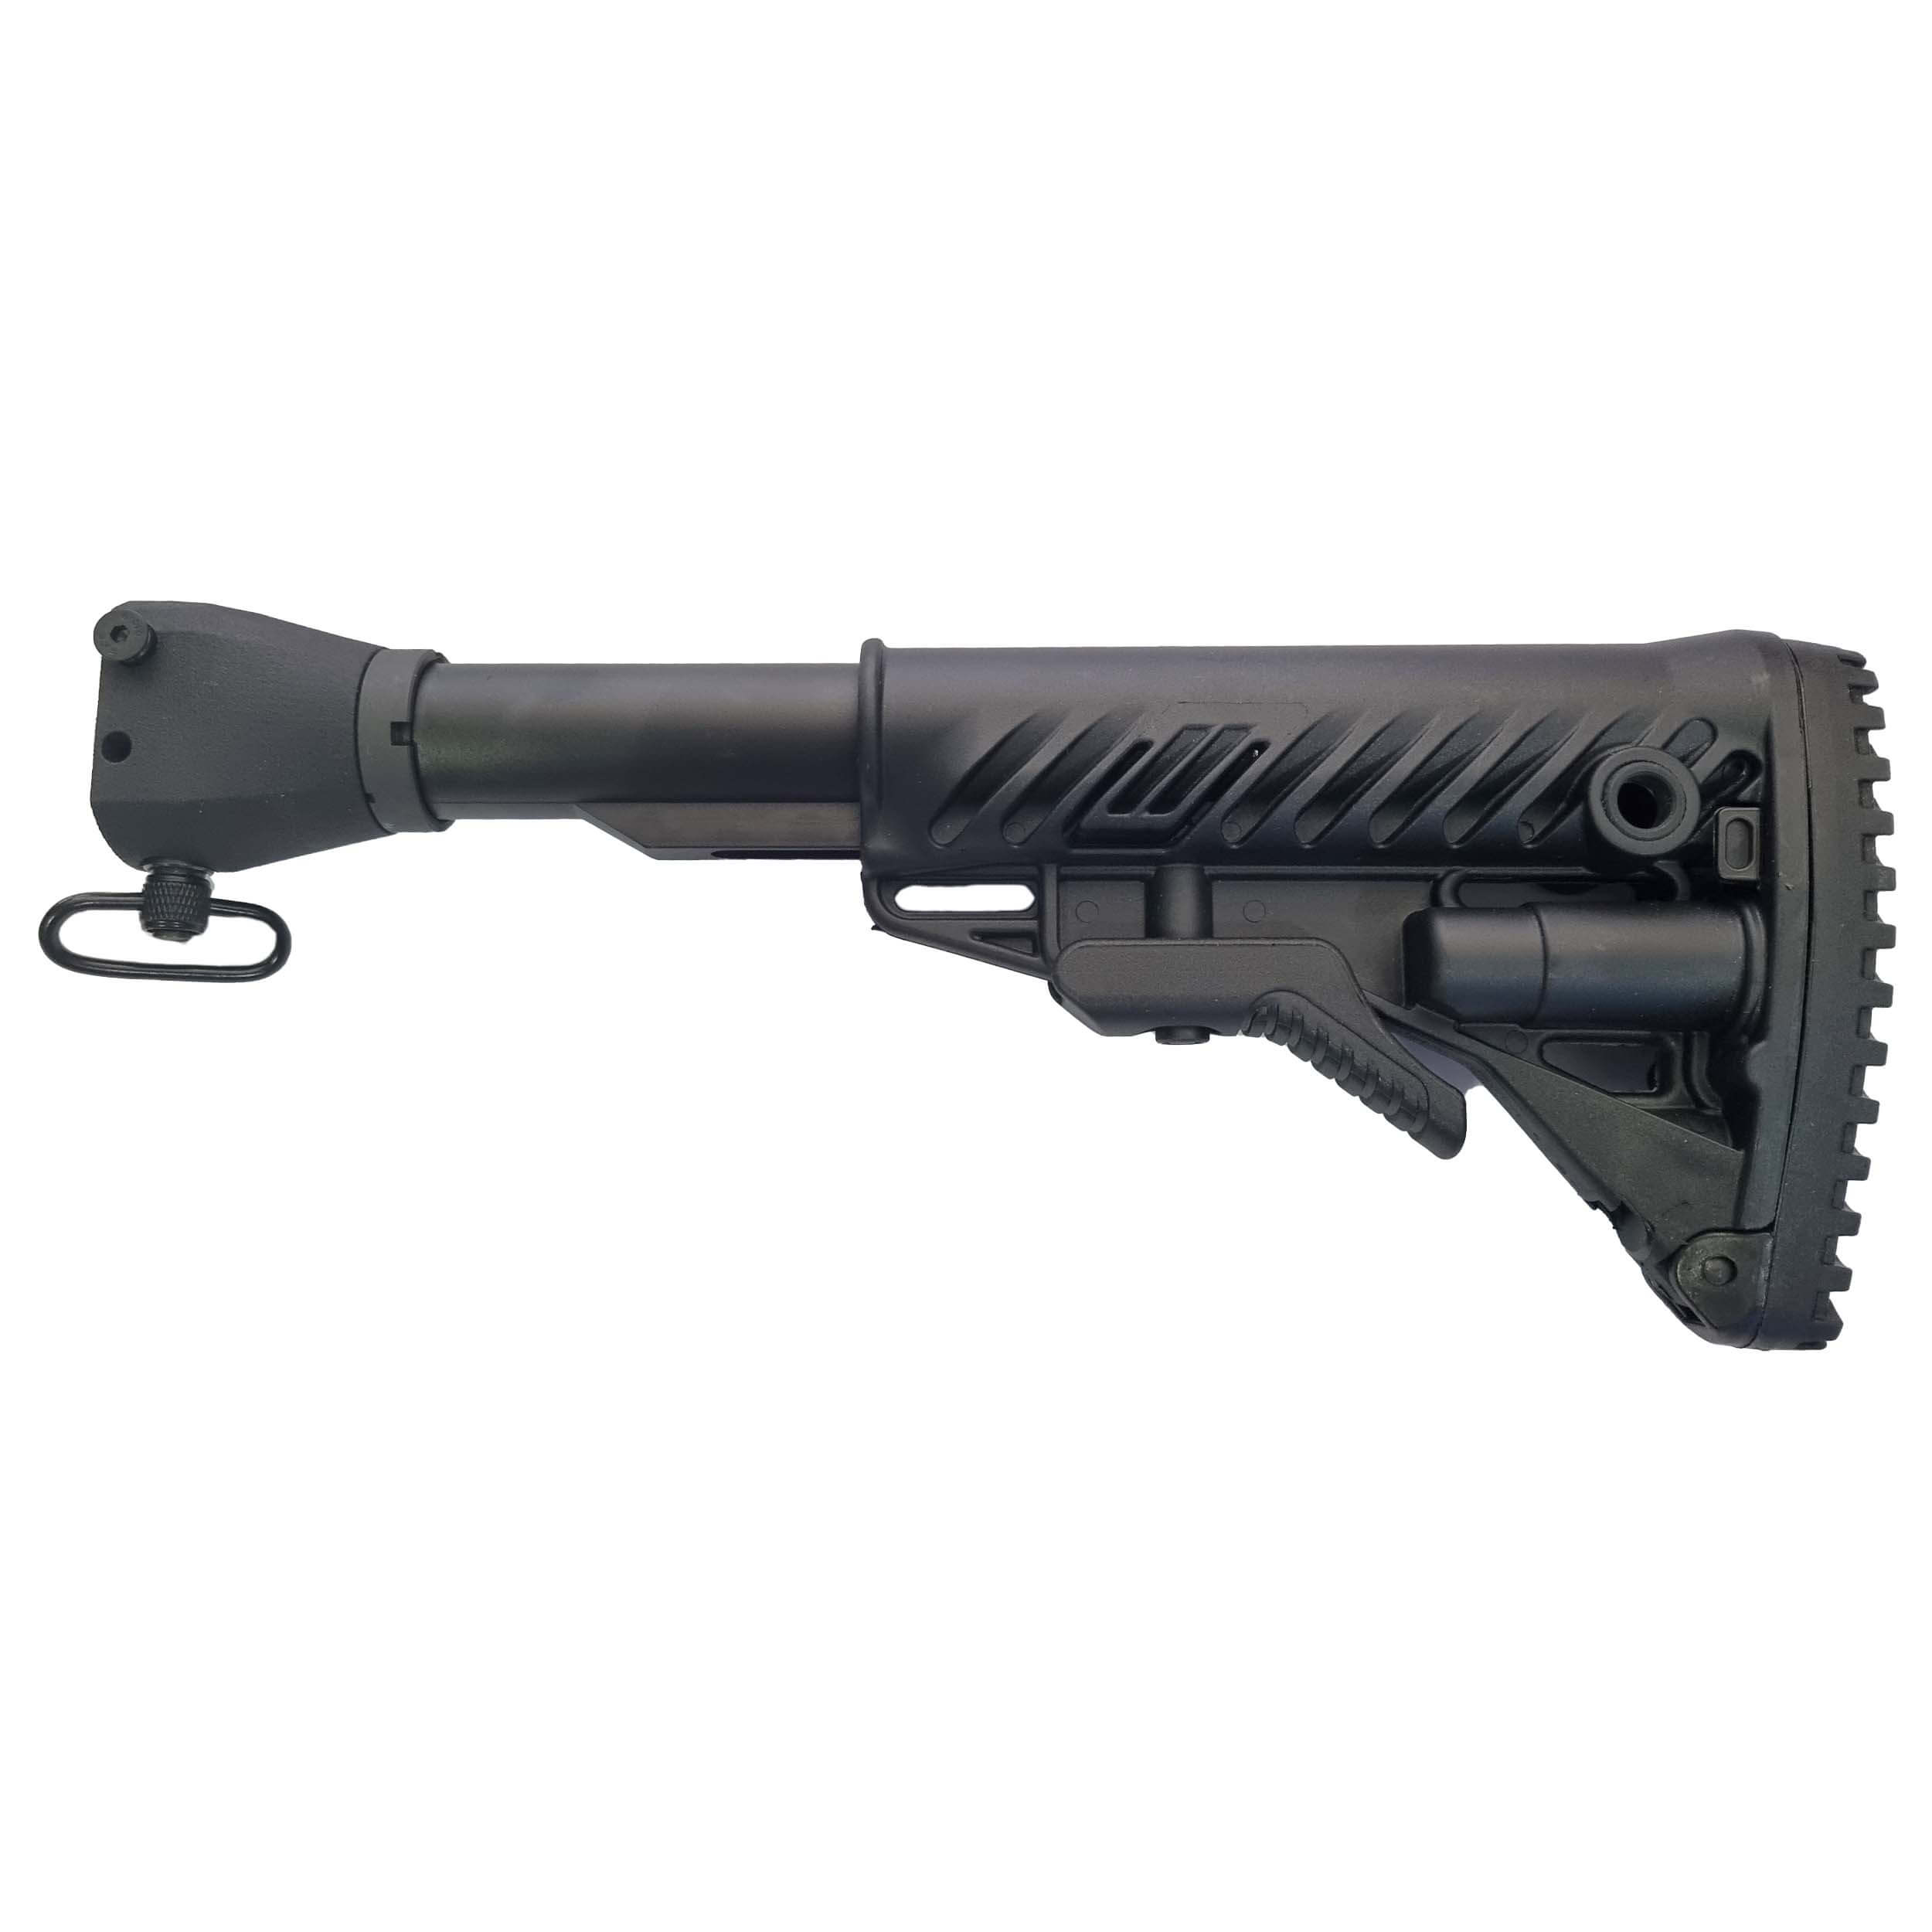 Fixed Stock M4 Style Kit with GLR-16 for KPOS G2.